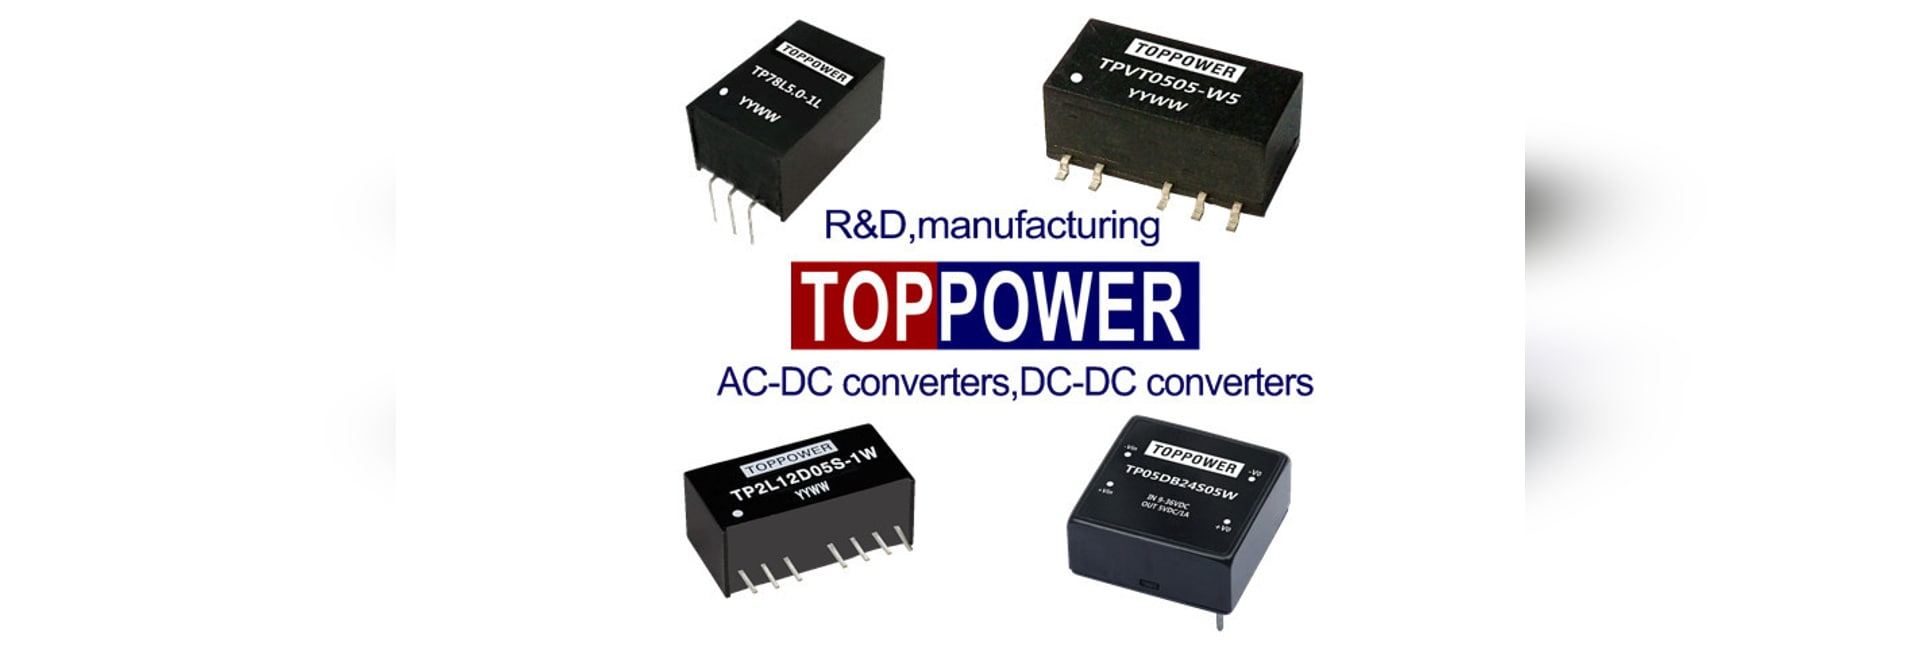 Dc Dcac Converters Manufacturer Toppower Guangzhou Ac Converter Circuit Is A Leading Of Convertersac